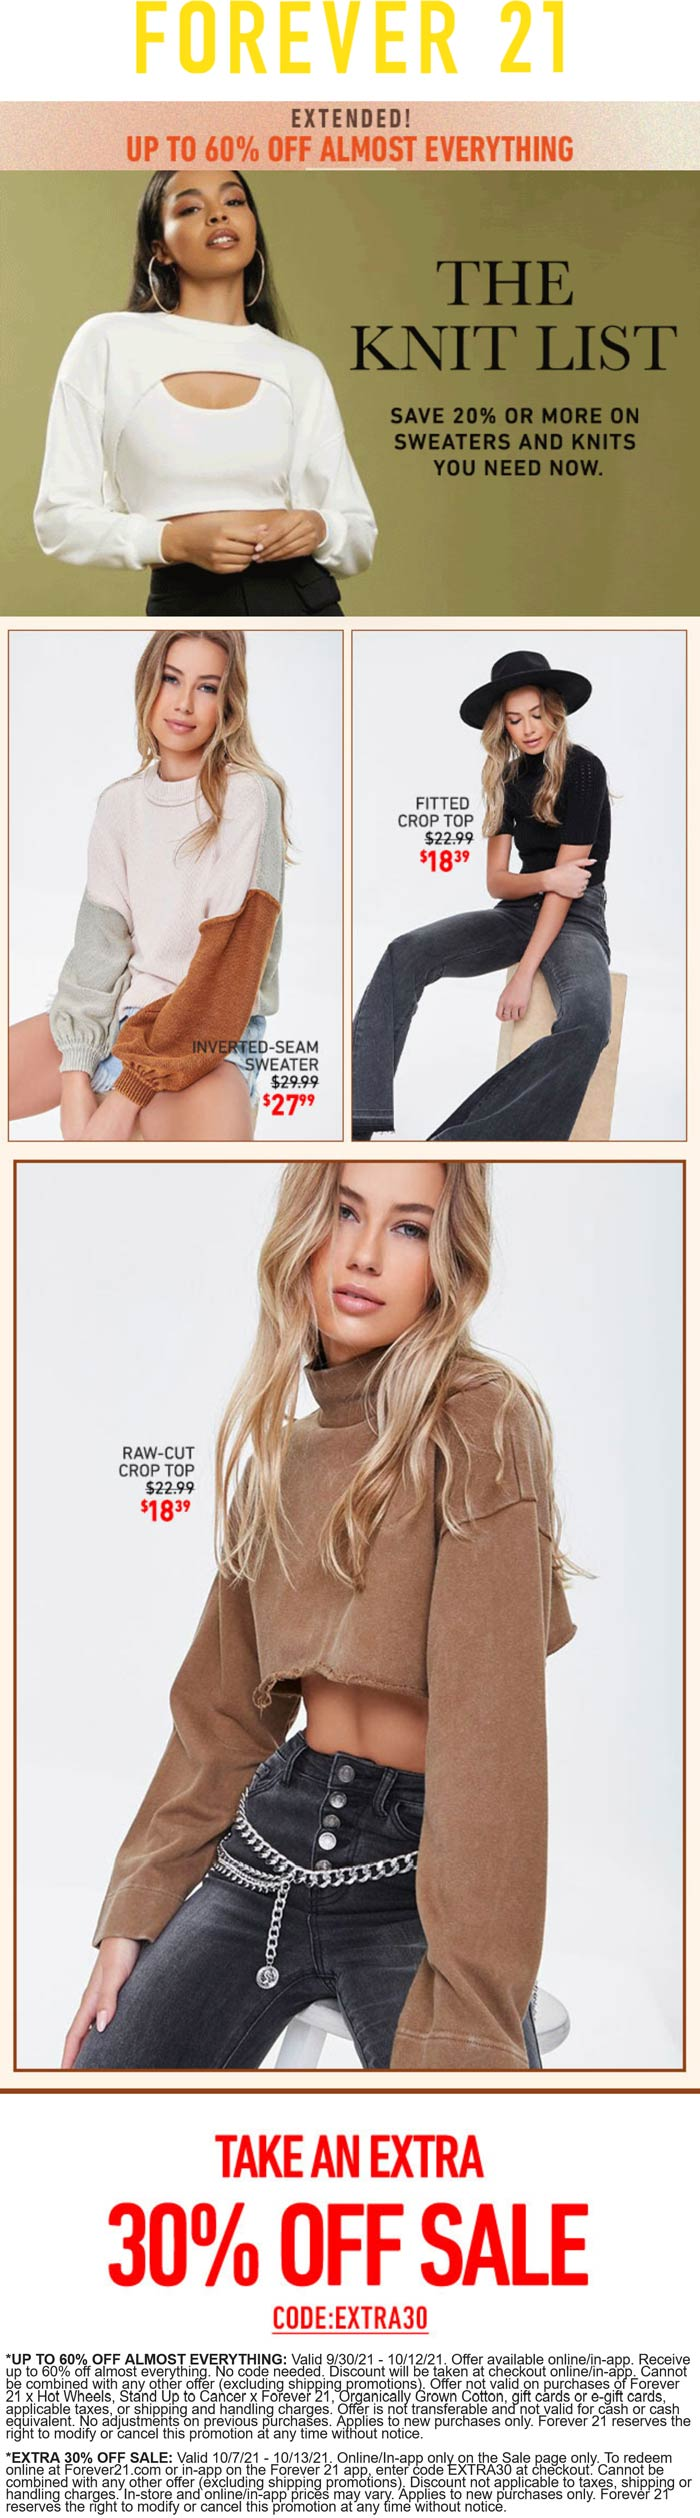 Forever 21 coupons & promo code for [October 2021]